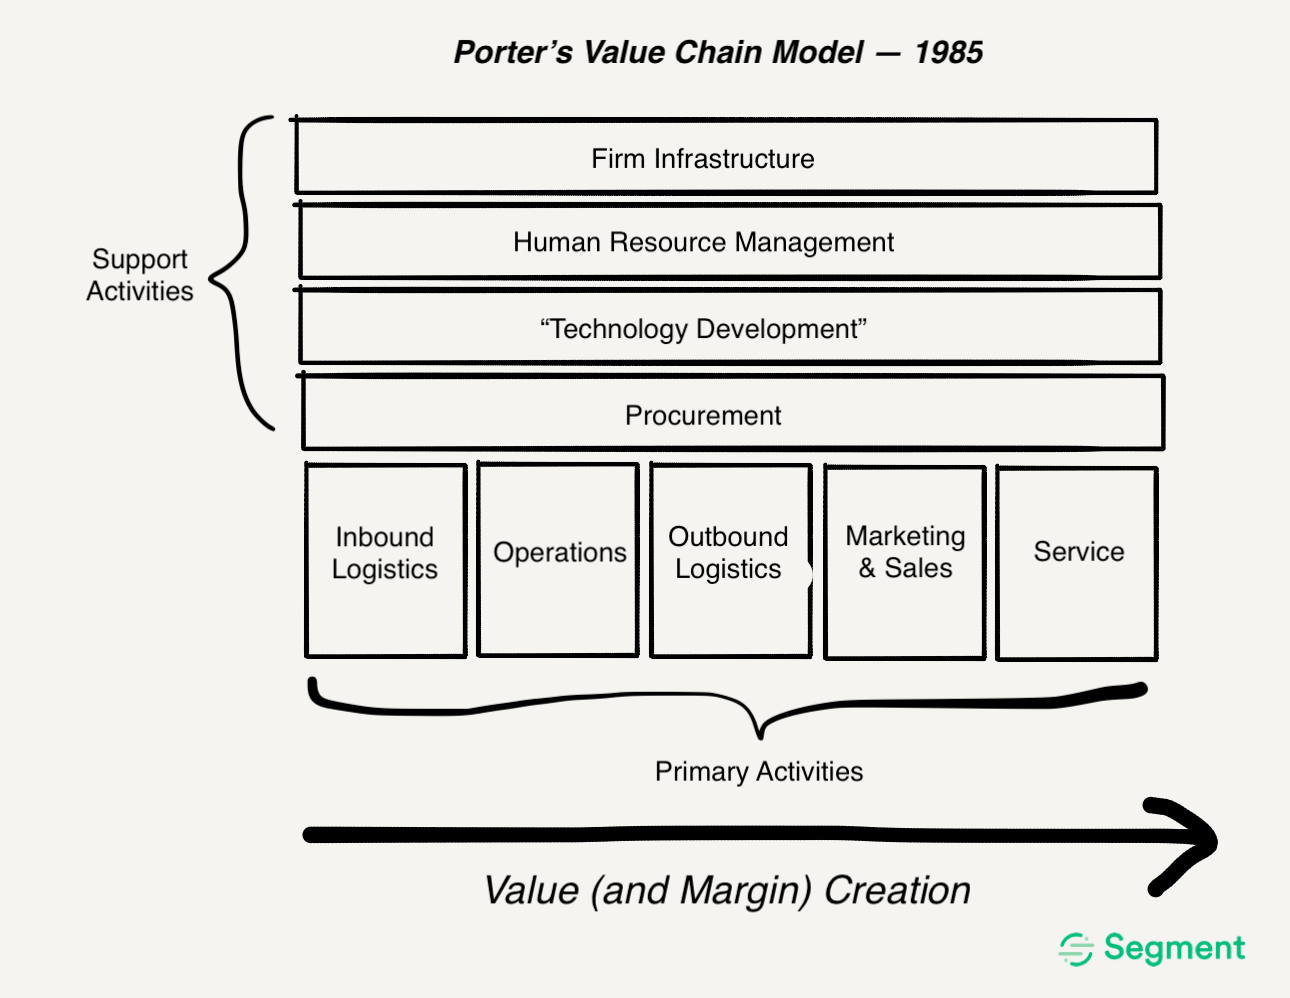 APIs are eating the value chain: Why we're transitioning to